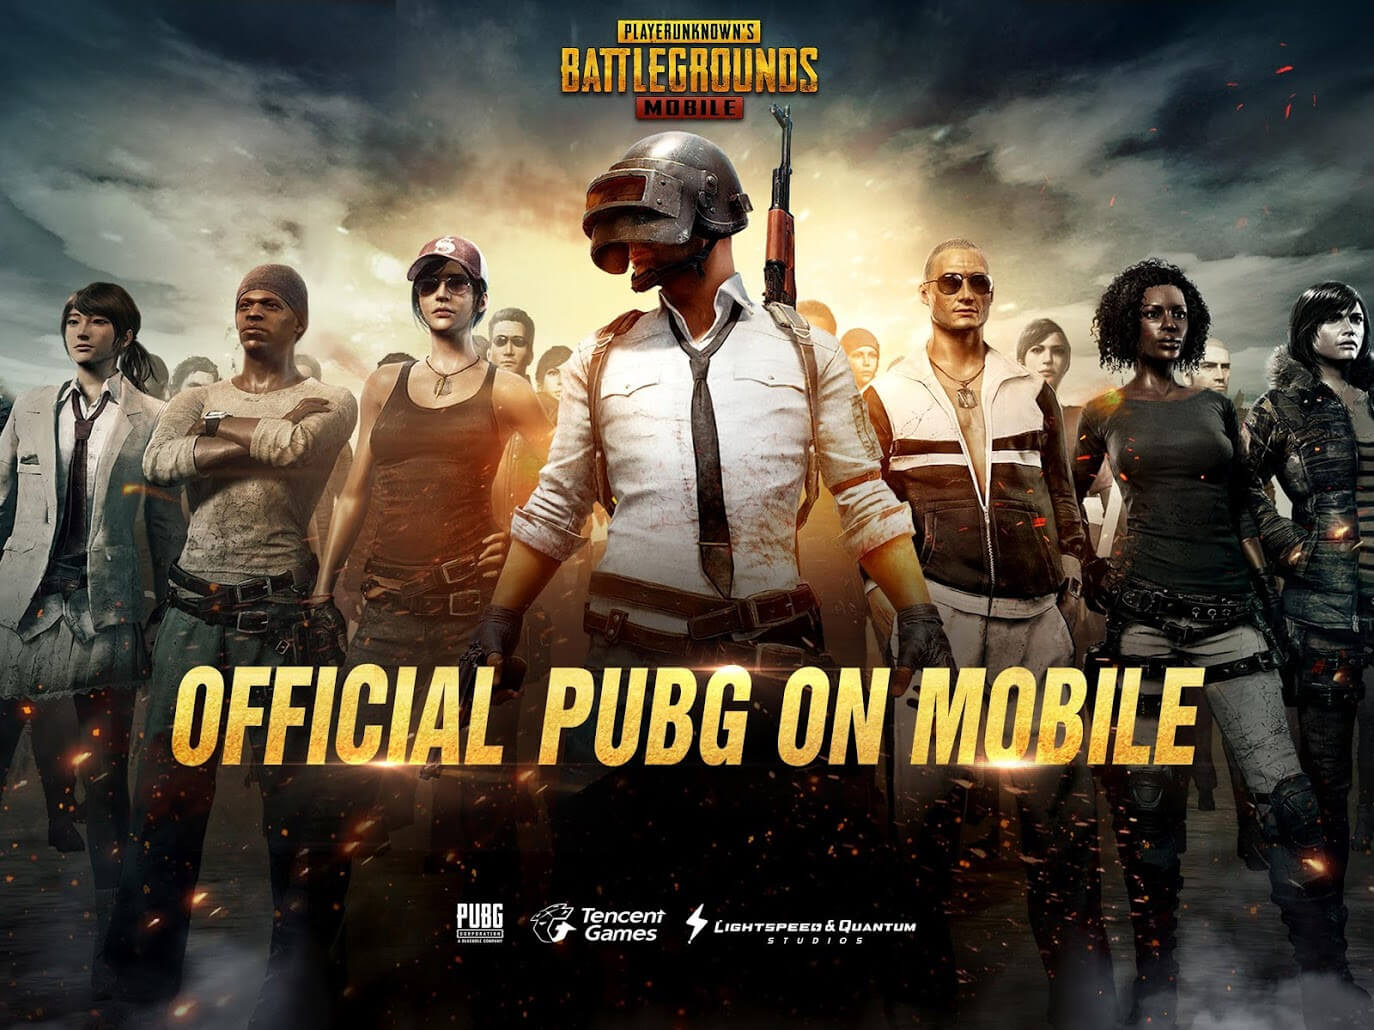 With Five Million Players, PUBG on Xbox One Should Be Amazing